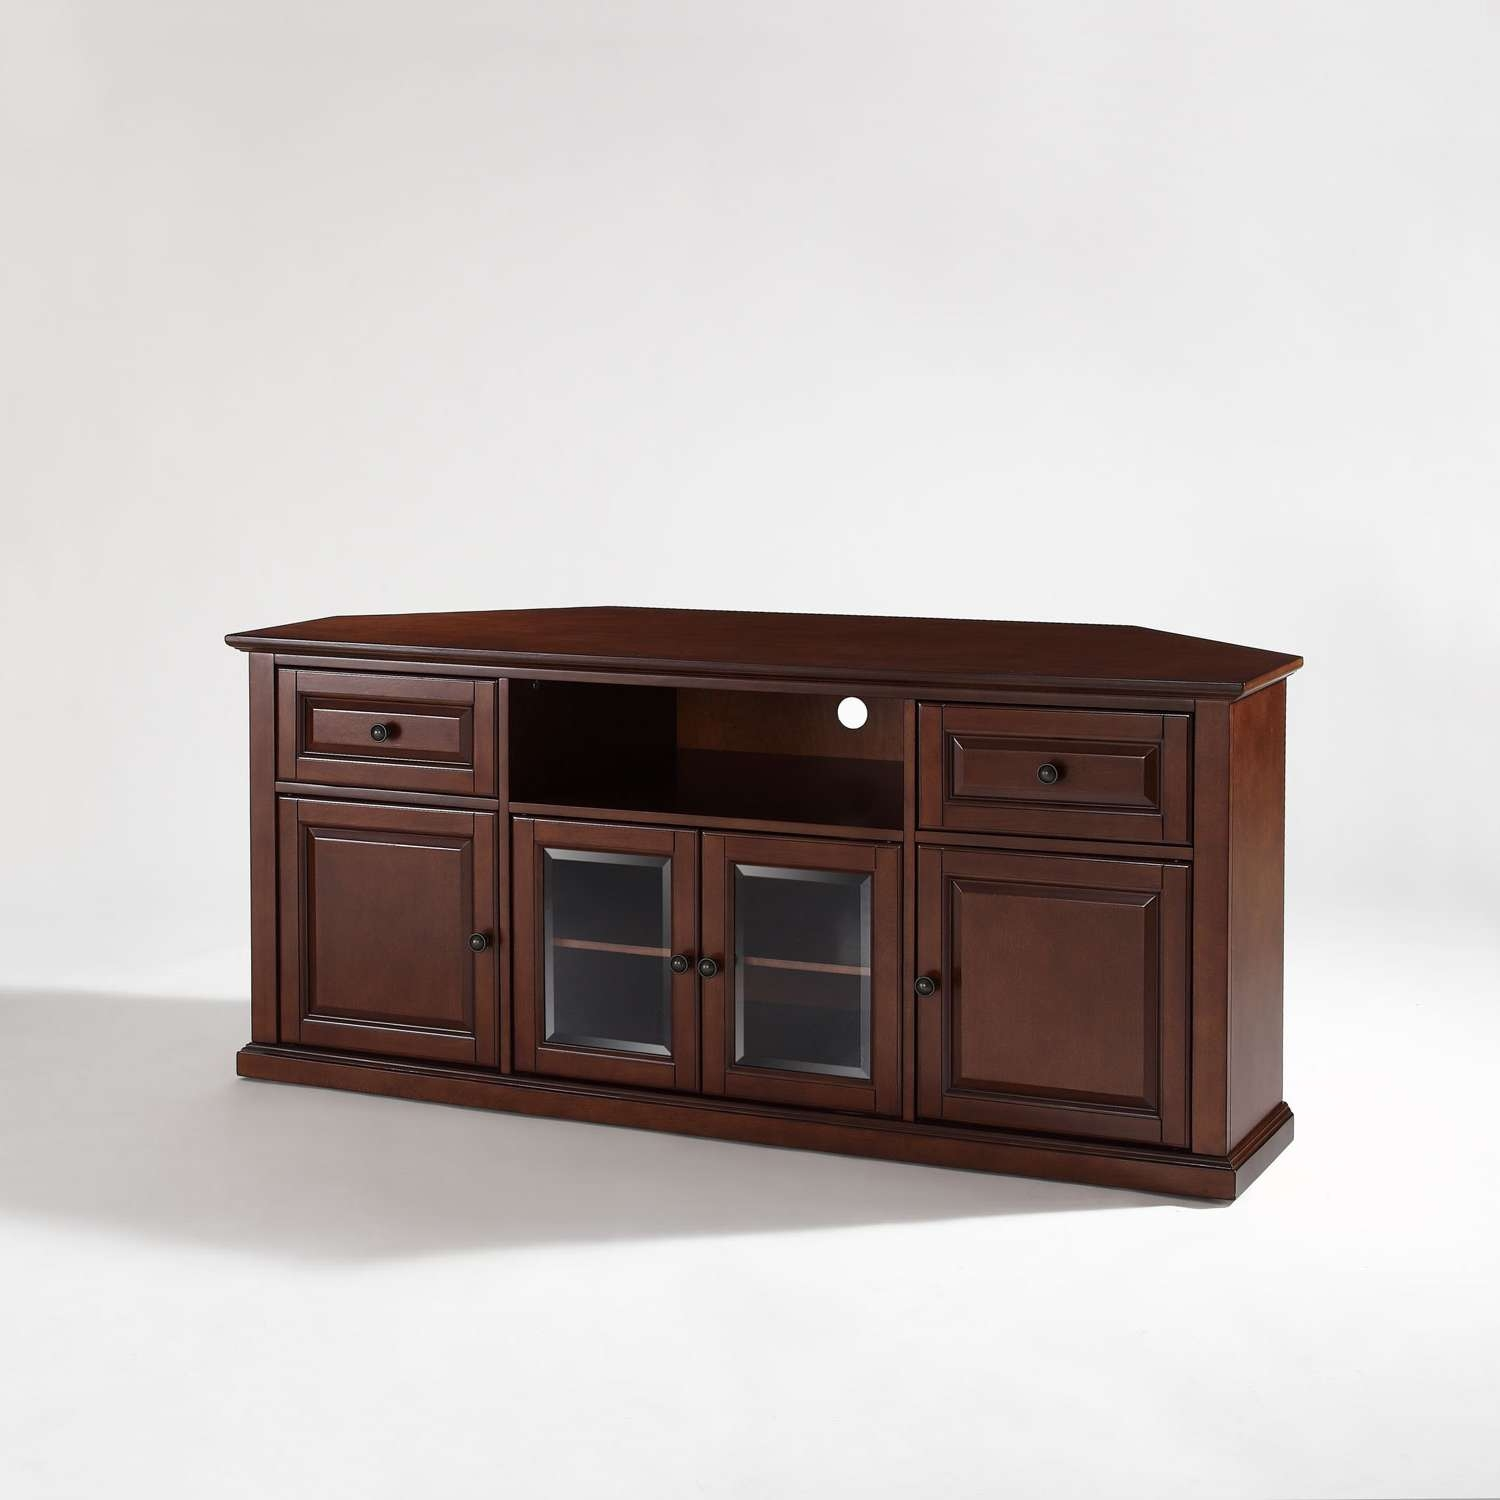 60 Inch Corner Tv Stand In Vintage Mahogany Crosley Furniture With Tv Stands Corner Units (View 2 of 15)